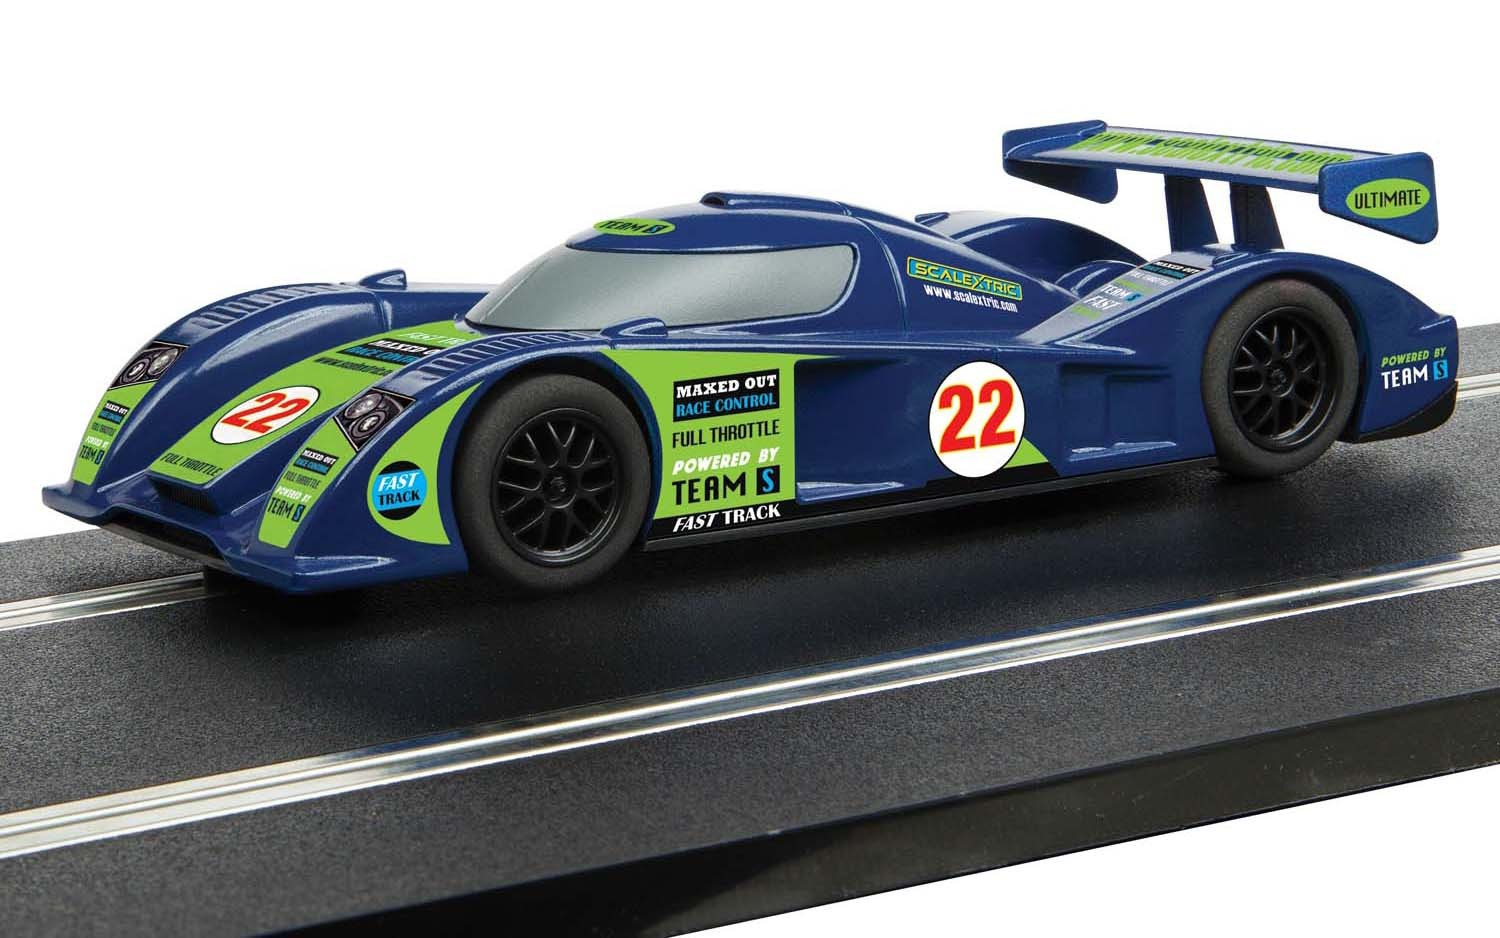 Start Endurance Car – 'Maxed Out Race control' 1/32 Slot Car